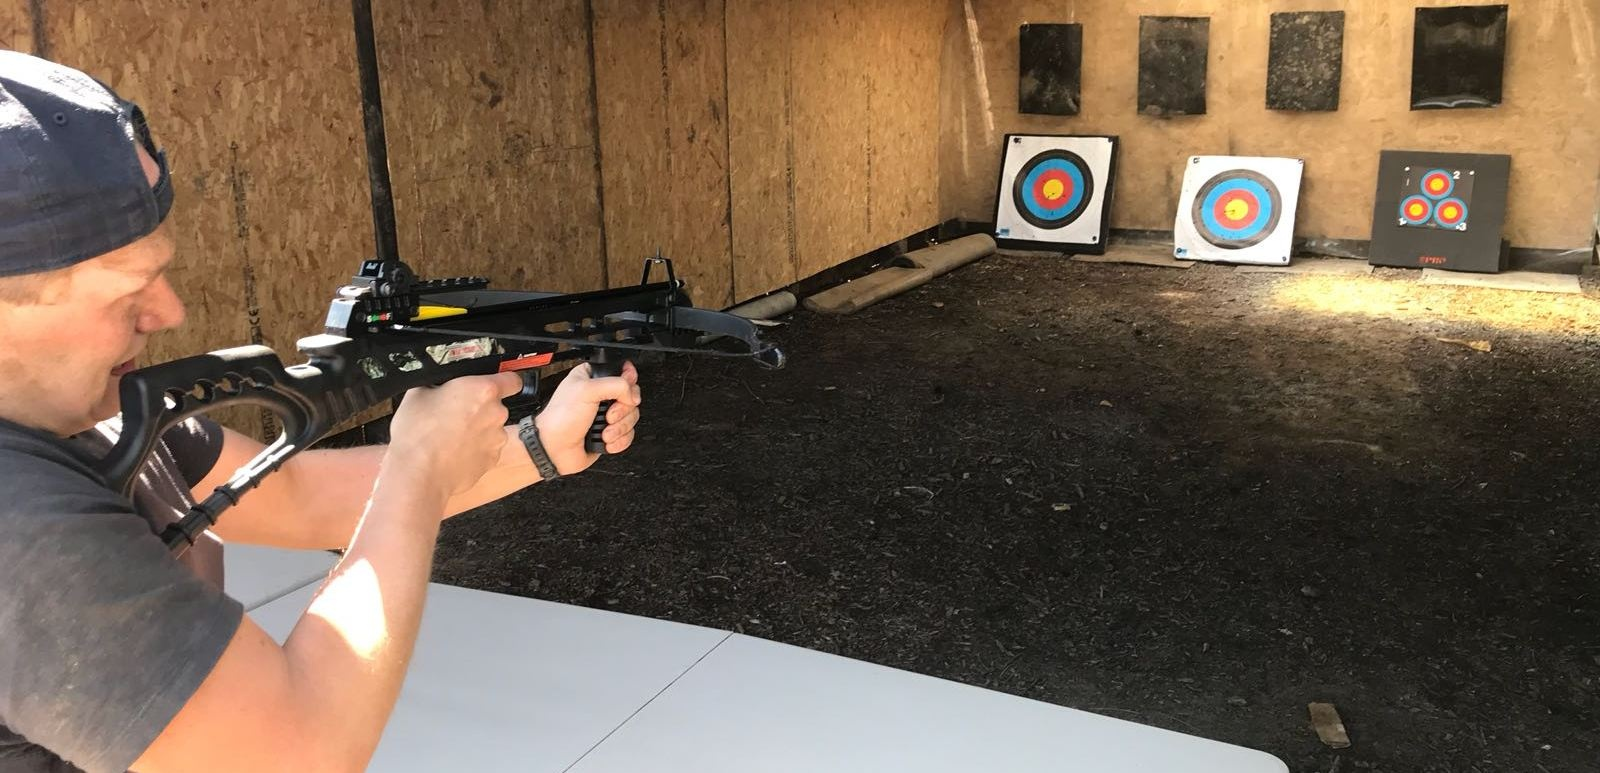 Axe Throwing and Crossbow Experience in Cheshire for 2-4